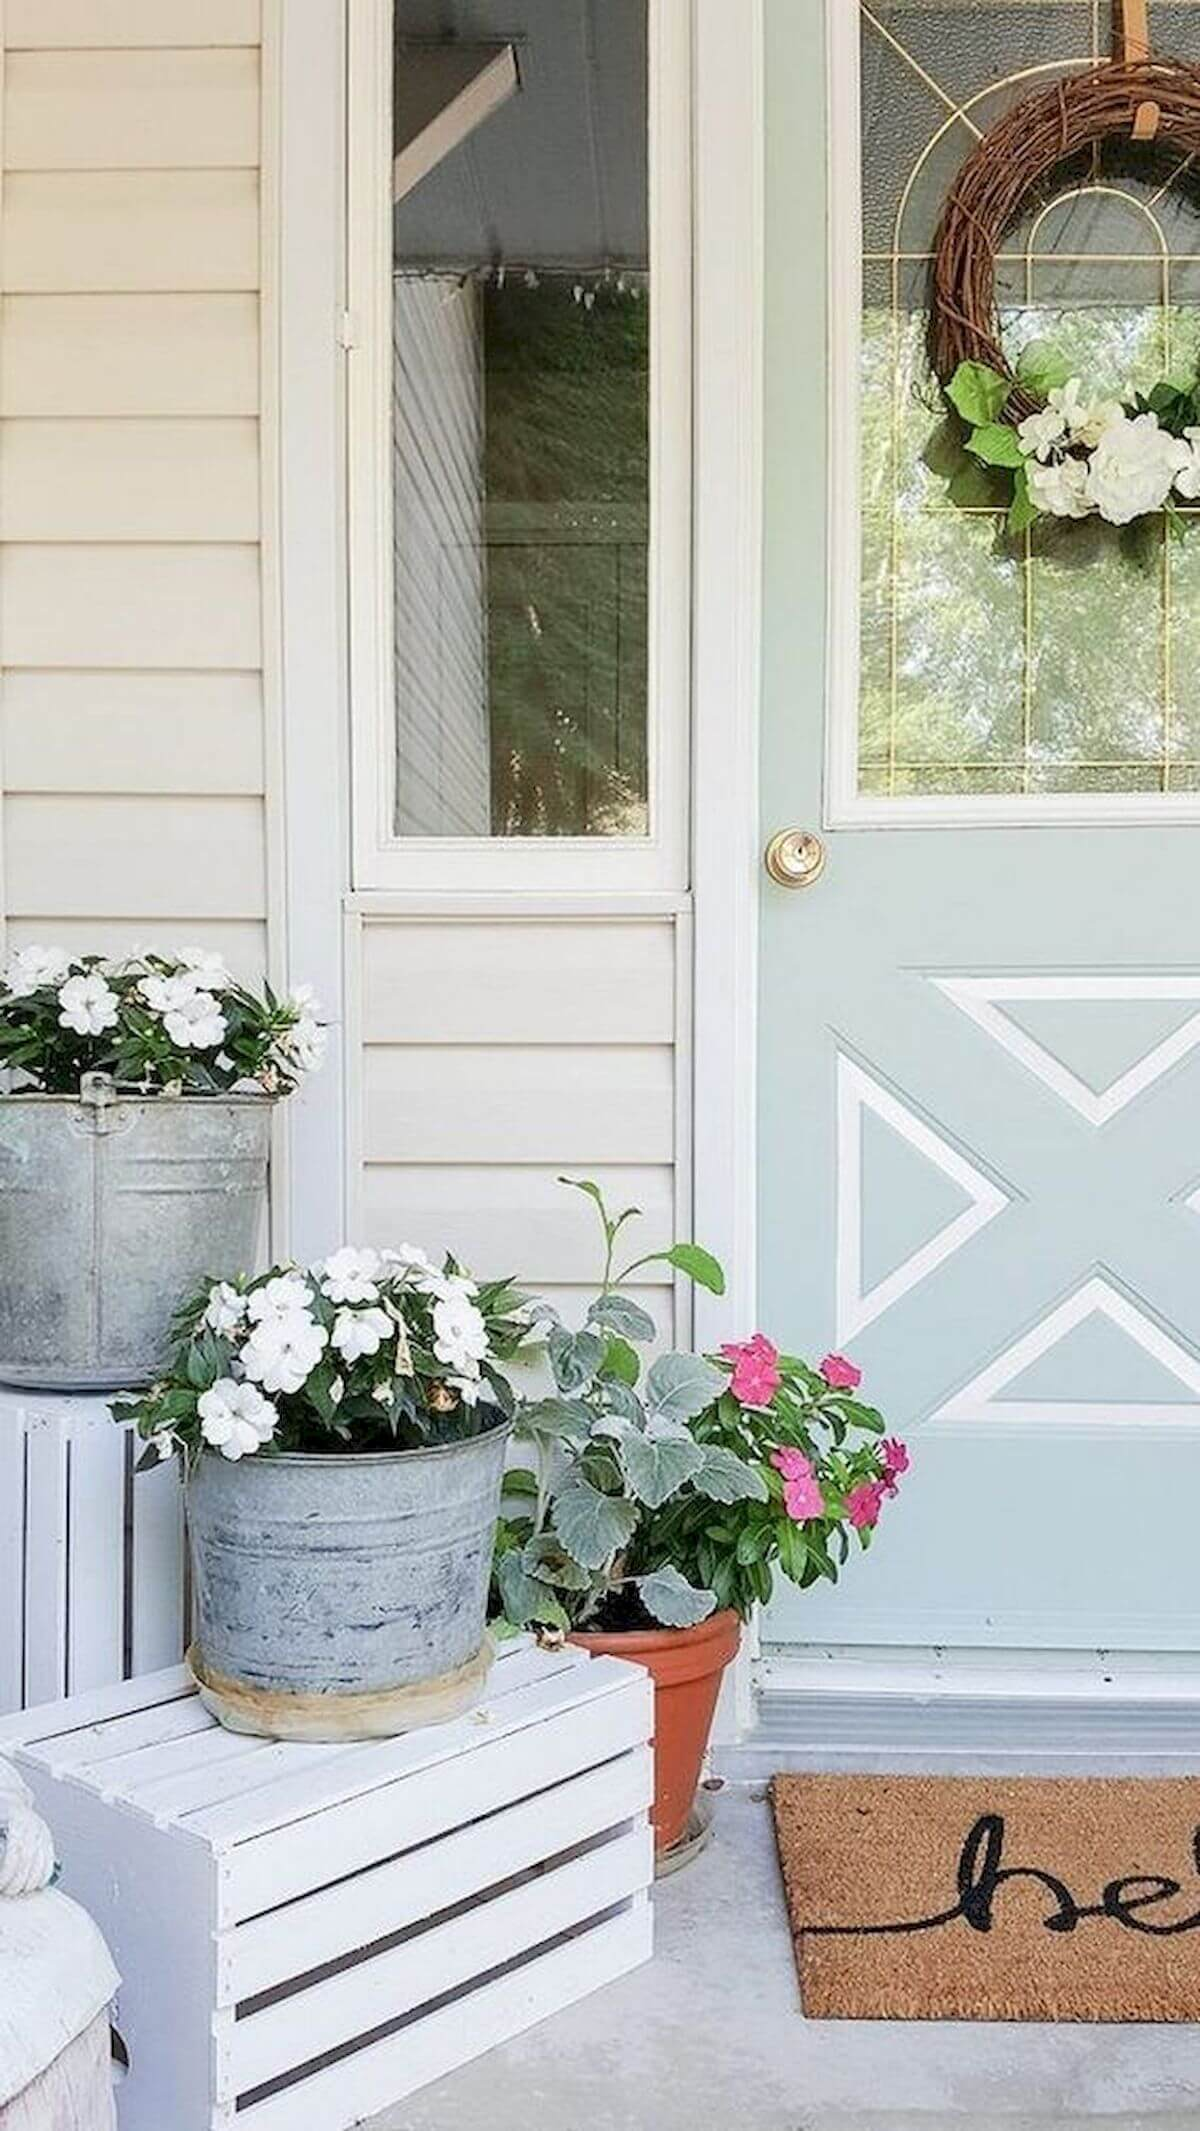 55 Best Summer Porch Decor Ideas And Designs For 2021